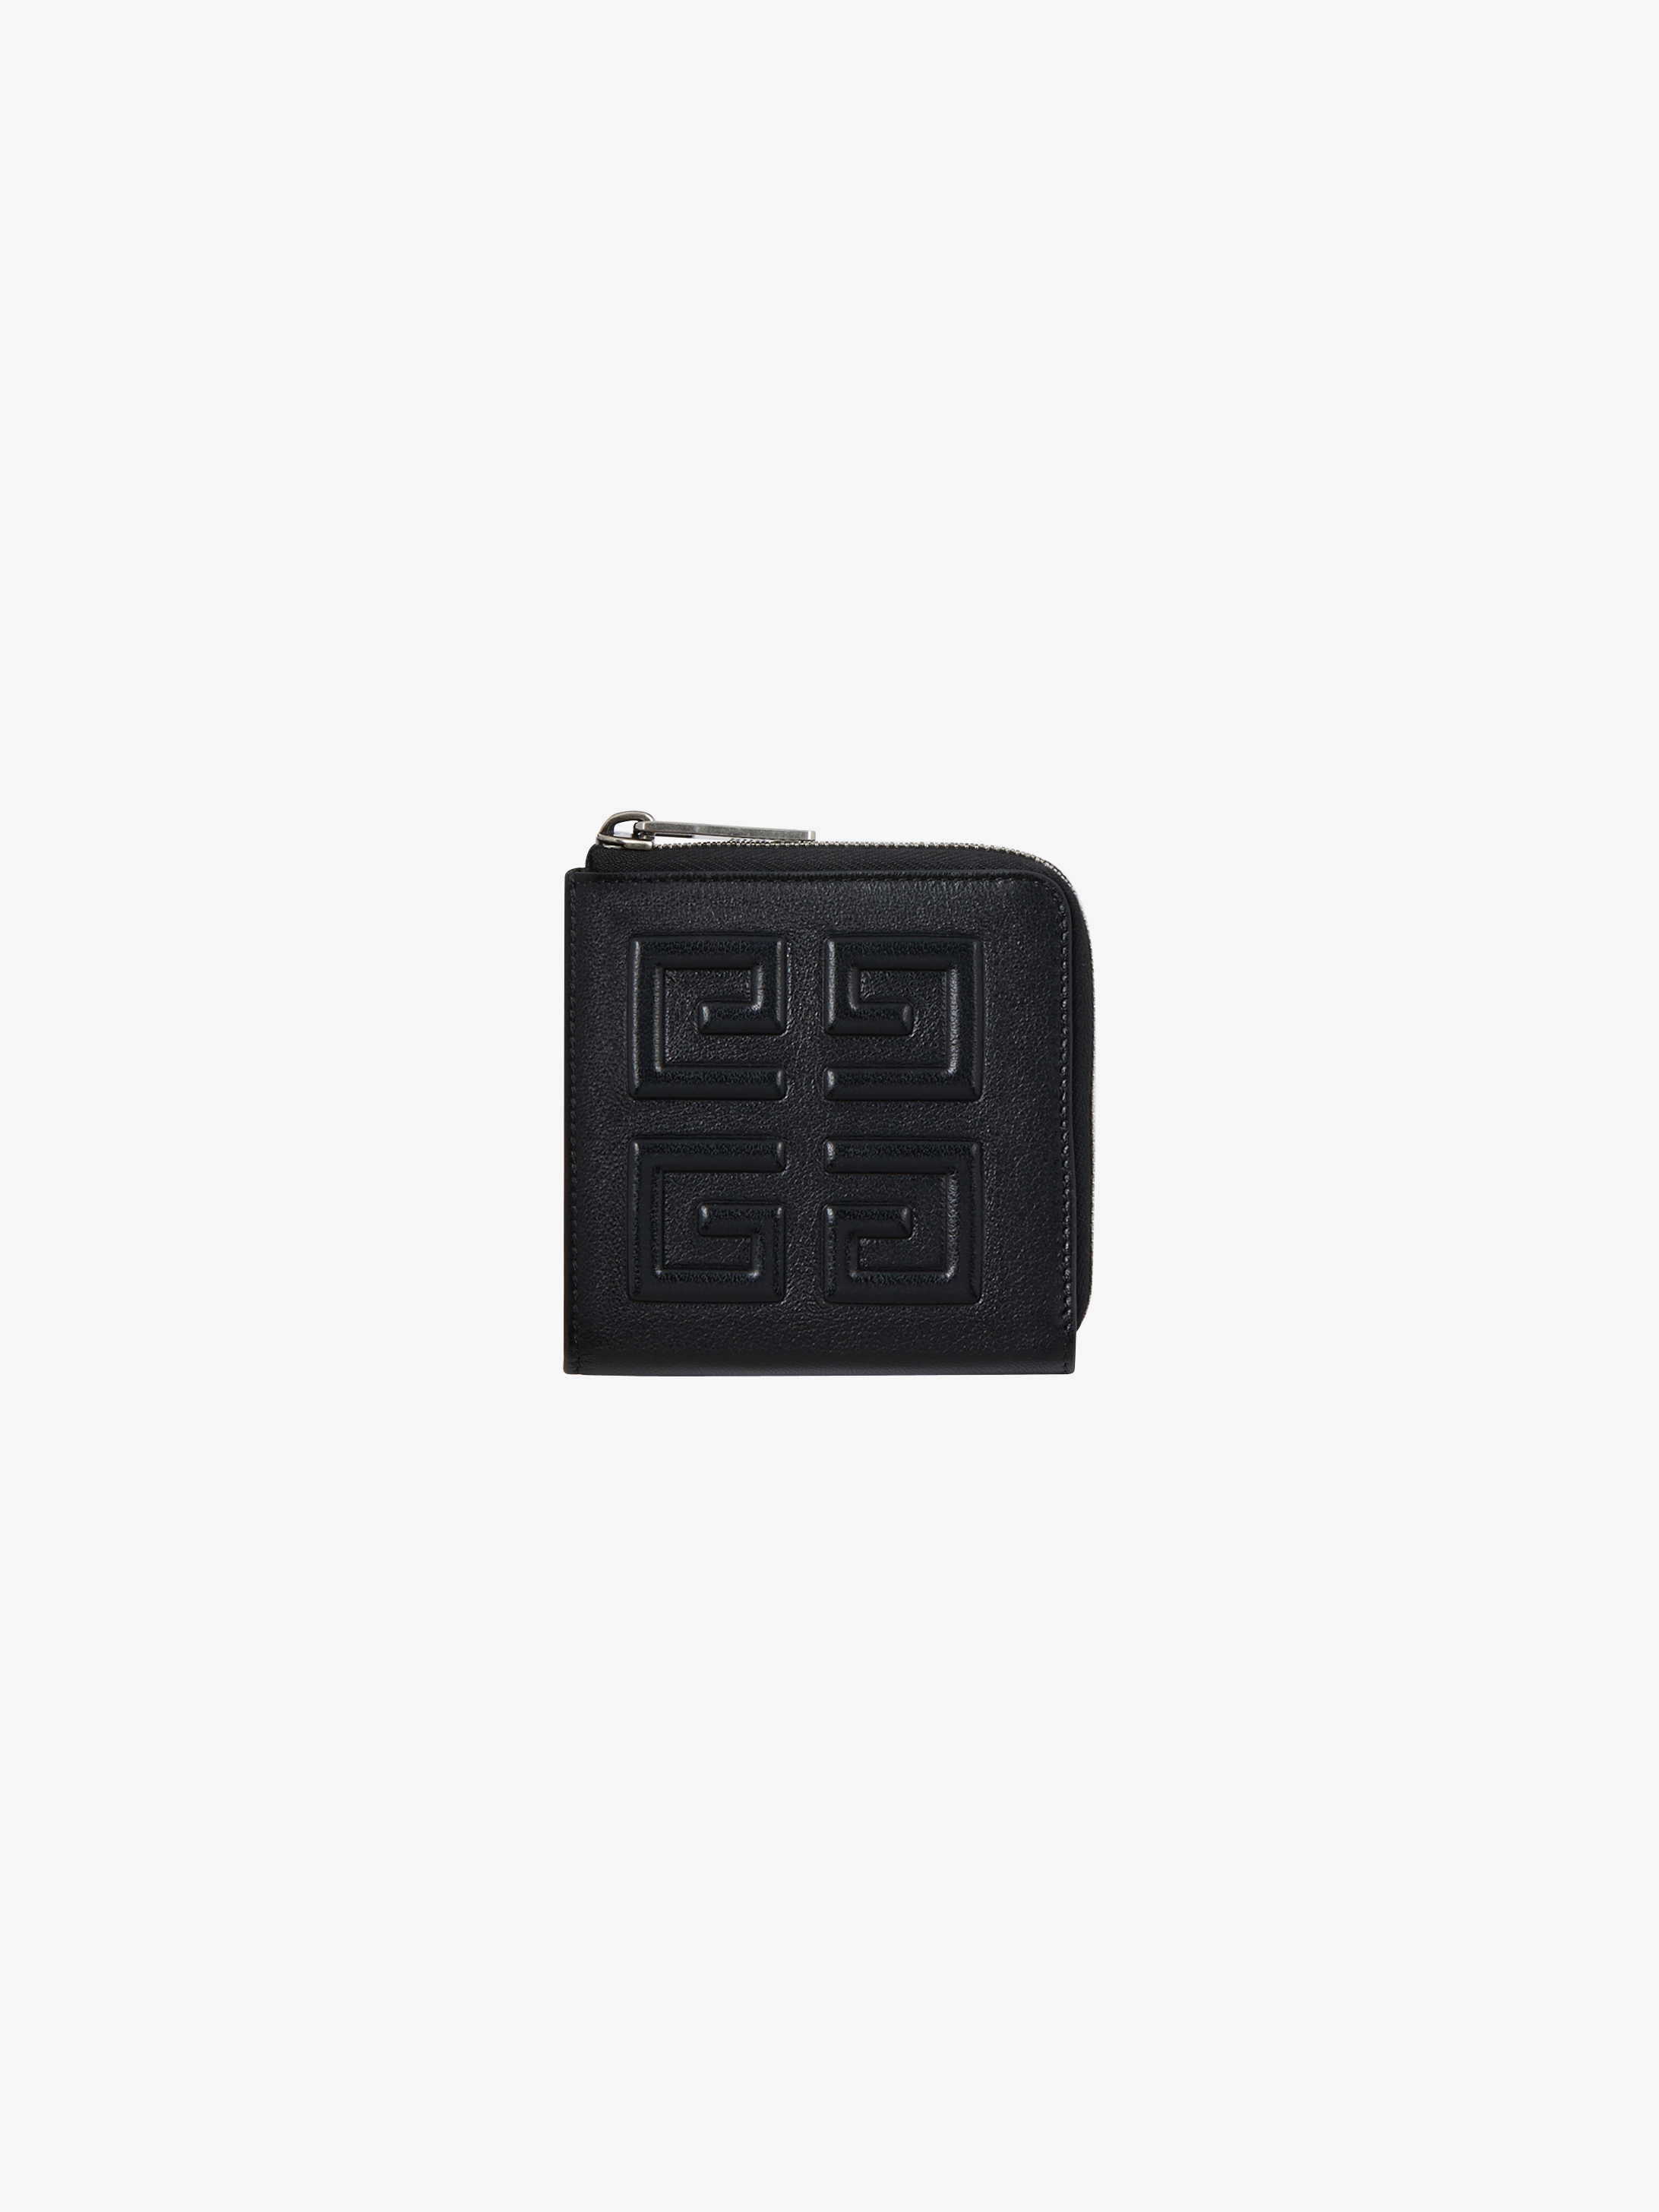 4G square zipped wallet